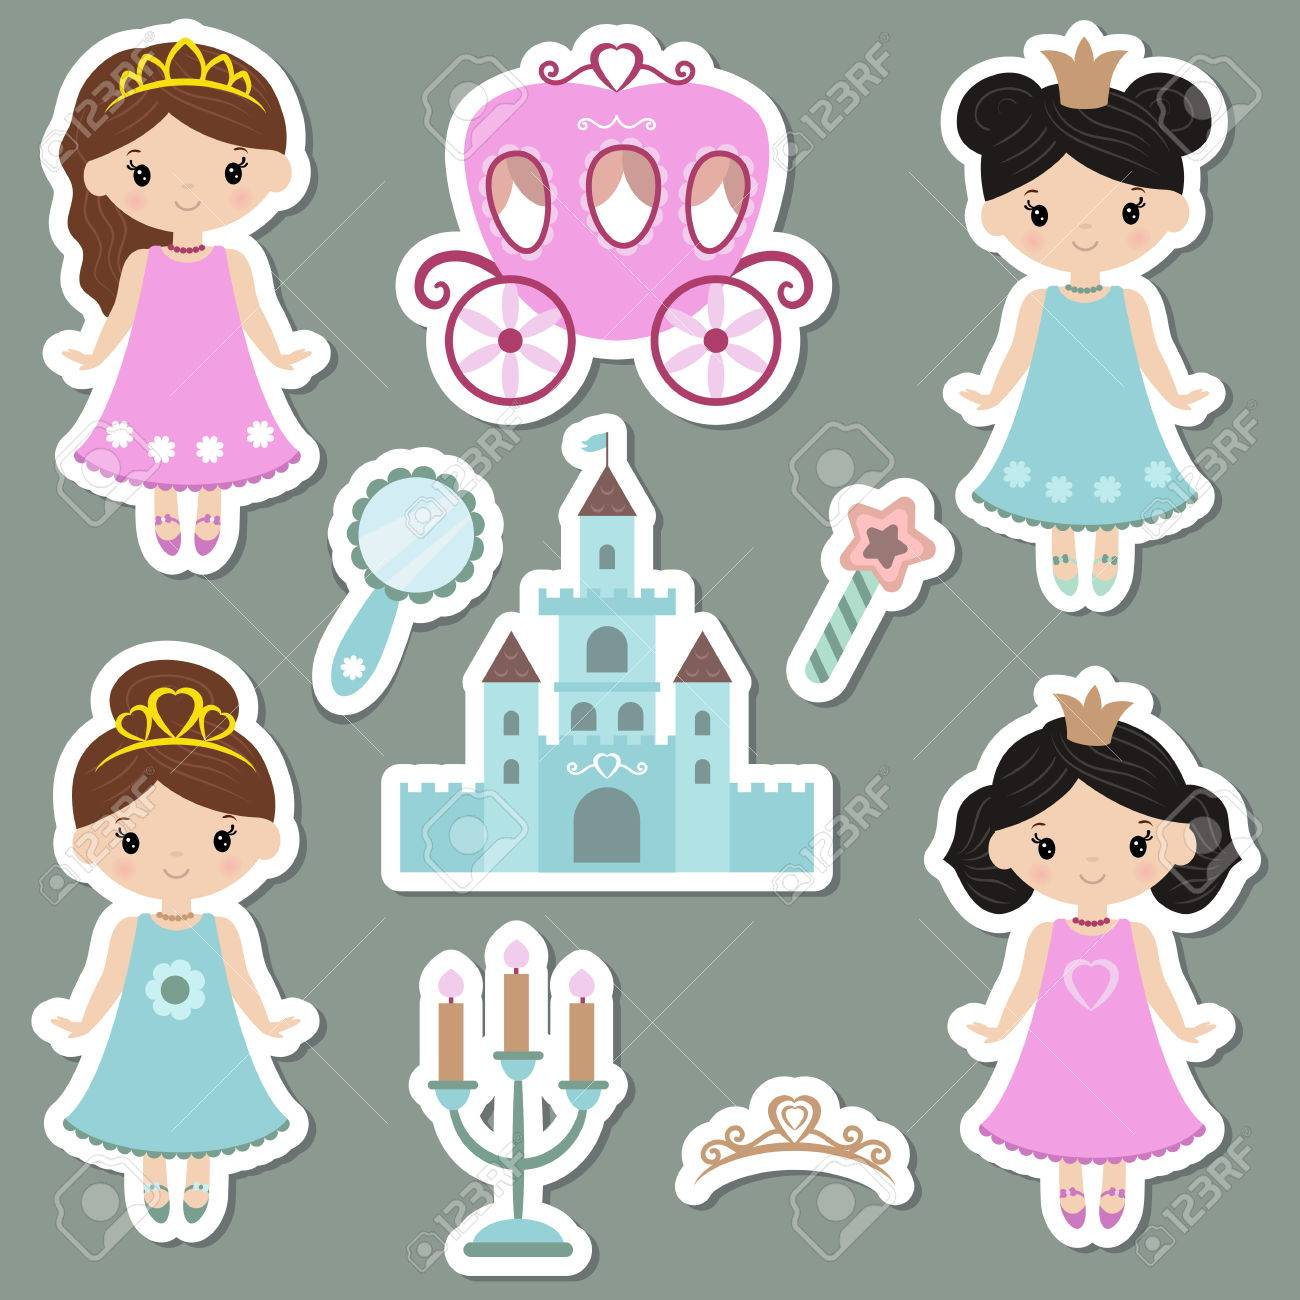 Disney Princesses Clipart Prinsesa - Princesa Tiana Cute Png , Free  Transparent Clipart - ClipartKey